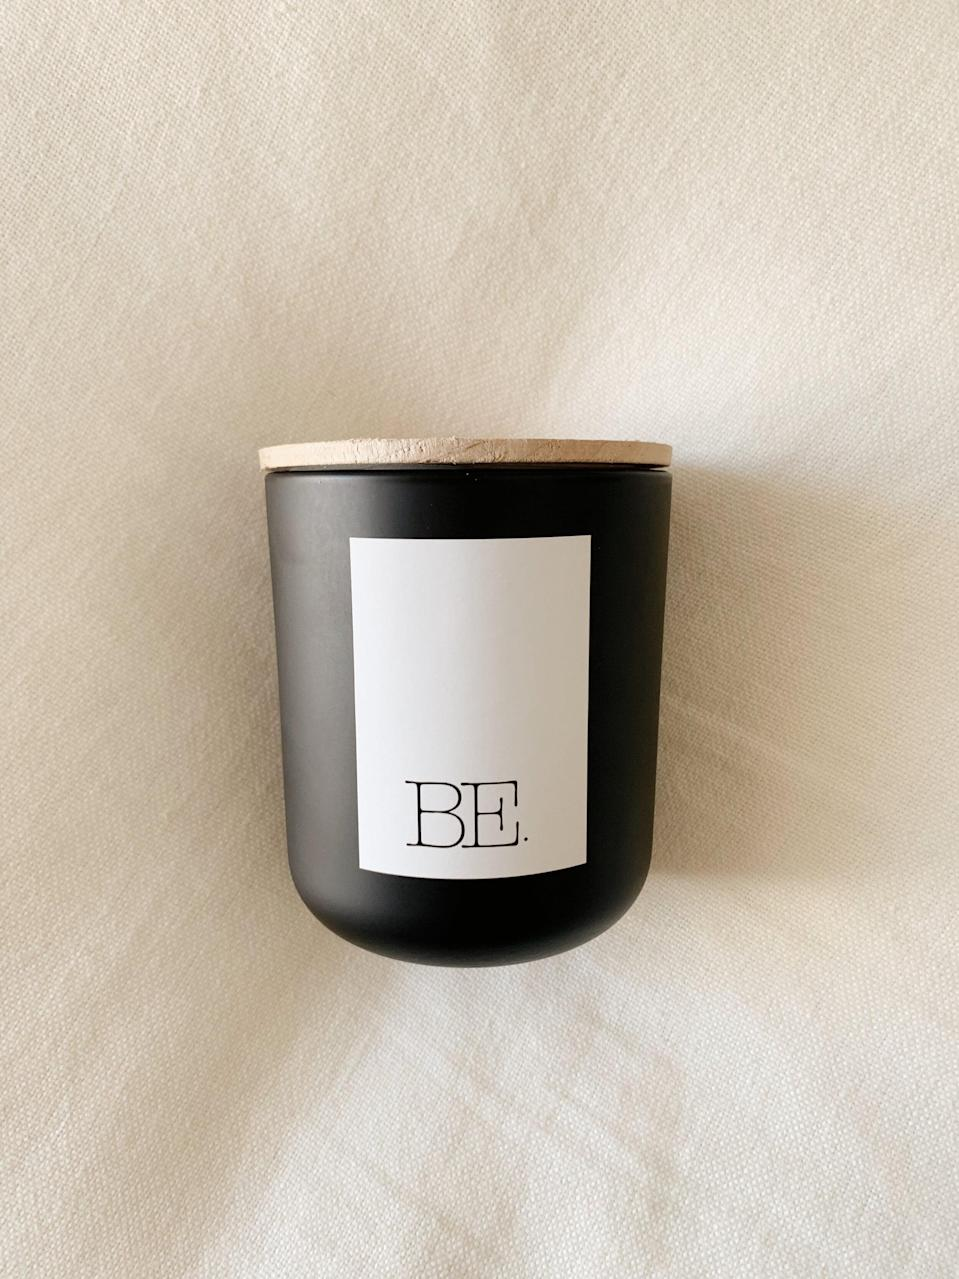 "<p>Fill your home with the amazing scent of the <a href=""https://www.popsugar.com/buy/LIGHT-Santal-Vanille-Sandalwood-Candle-584601?p_name=BE.%20LIGHT%20Santal%20Vanille%20Sandalwood%20Candle&retailer=homebybe.com&pid=584601&price=45&evar1=casa%3Aus&evar9=47572354&evar98=https%3A%2F%2Fwww.popsugar.com%2Fhome%2Fphoto-gallery%2F47572354%2Fimage%2F47572400%2FBE-LIGHT-Santal-Vanille-Sandalwood-Candle&list1=shopping%2Chome%20decorating%2Cdecor%20shopping%2Chome%20shopping&prop13=mobile&pdata=1"" class=""link rapid-noclick-resp"" rel=""nofollow noopener"" target=""_blank"" data-ylk=""slk:BE. LIGHT Santal Vanille Sandalwood Candle"">BE. LIGHT Santal Vanille Sandalwood Candle</a> ($45).</p>"